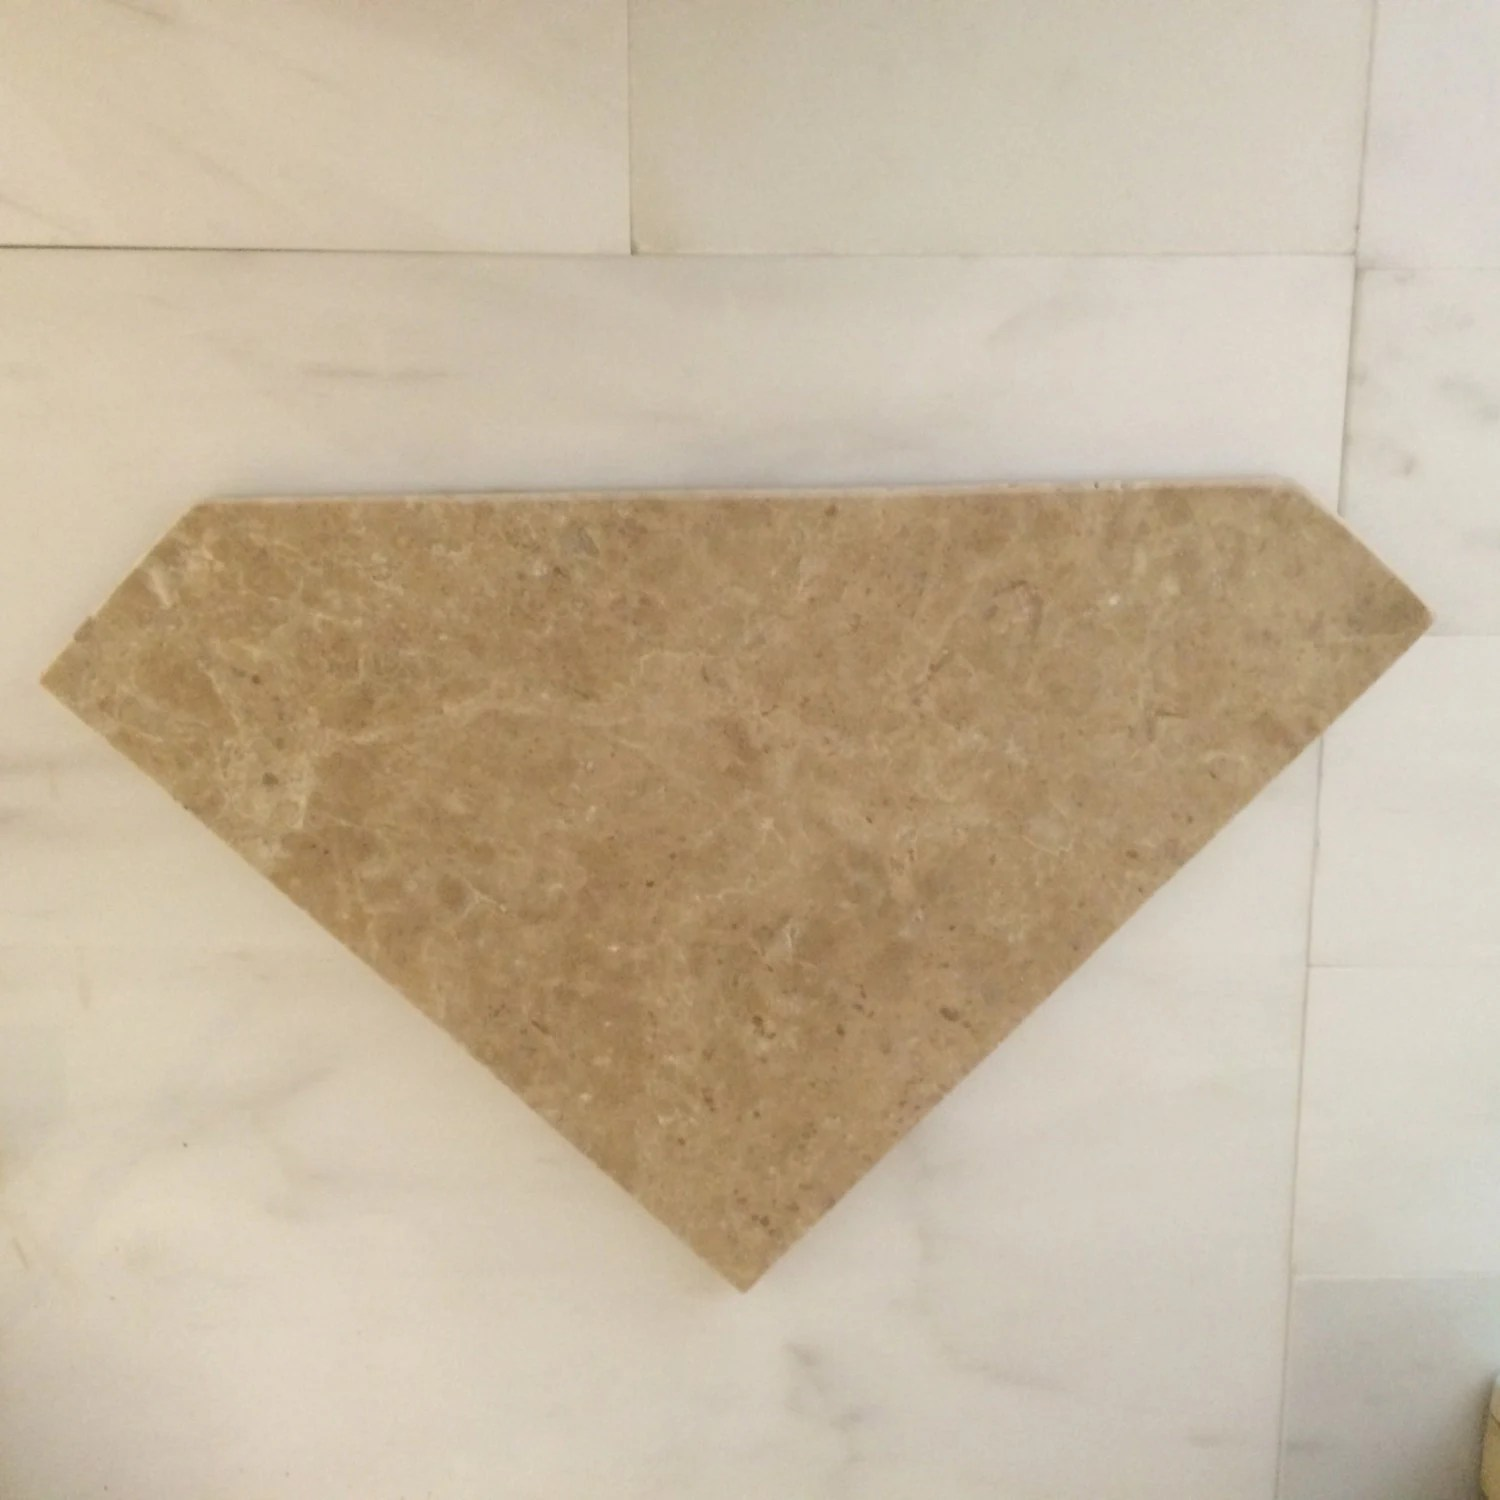 Etching Diamond Travertine